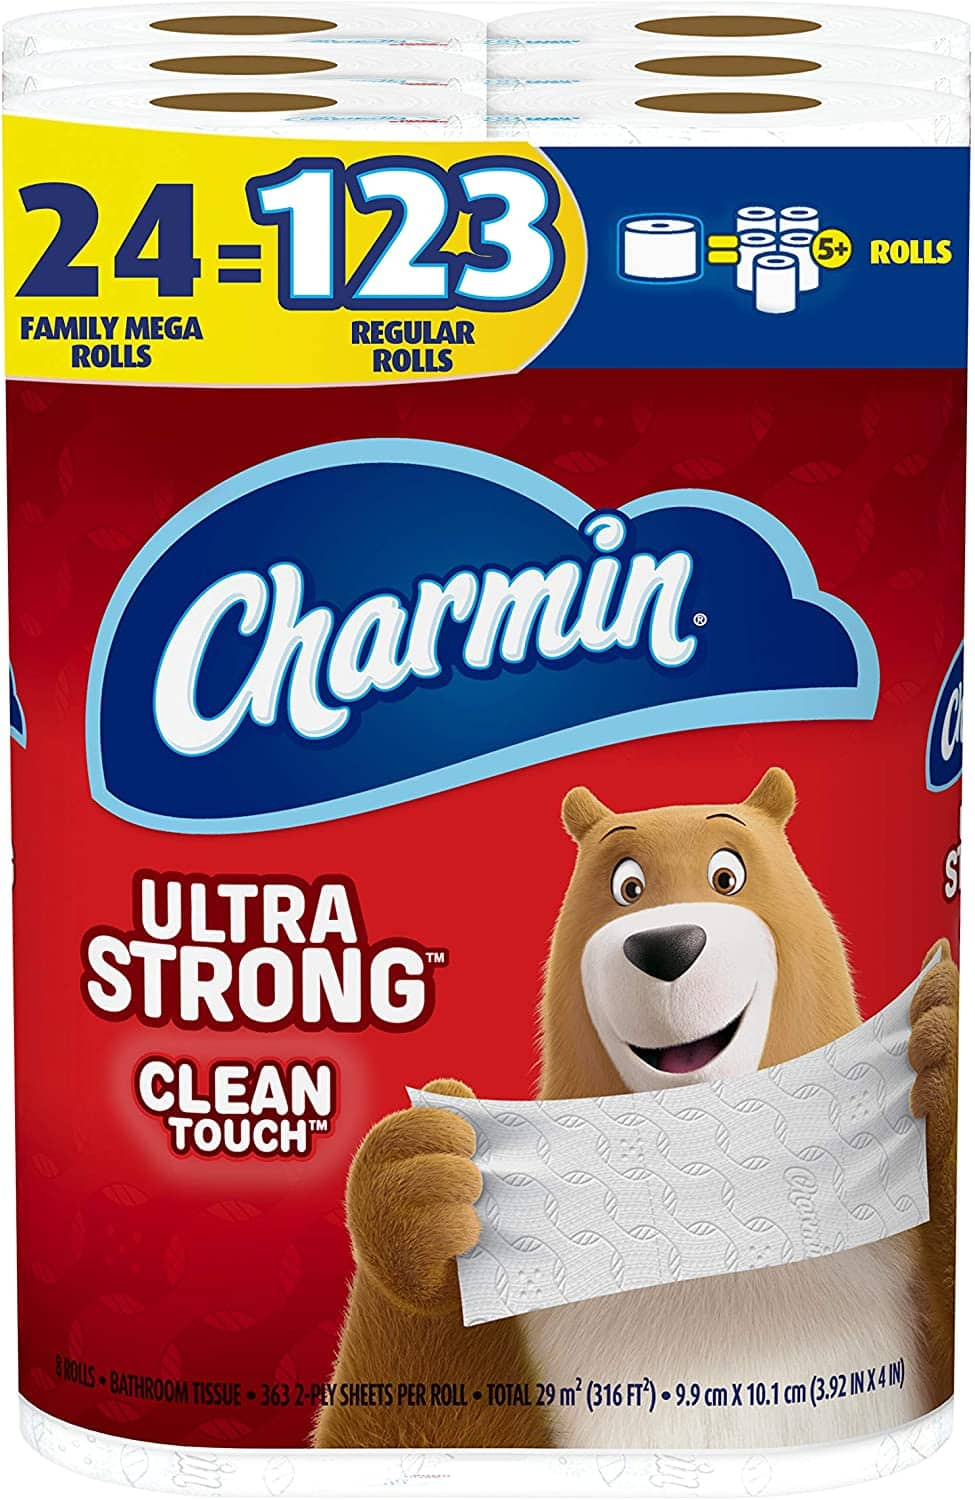 Charmin Ultra Strong Clean Touch Toilet Paper, 24 Family Mega Rolls (8,712 sheets) - $31.49 - FS w/ Prime